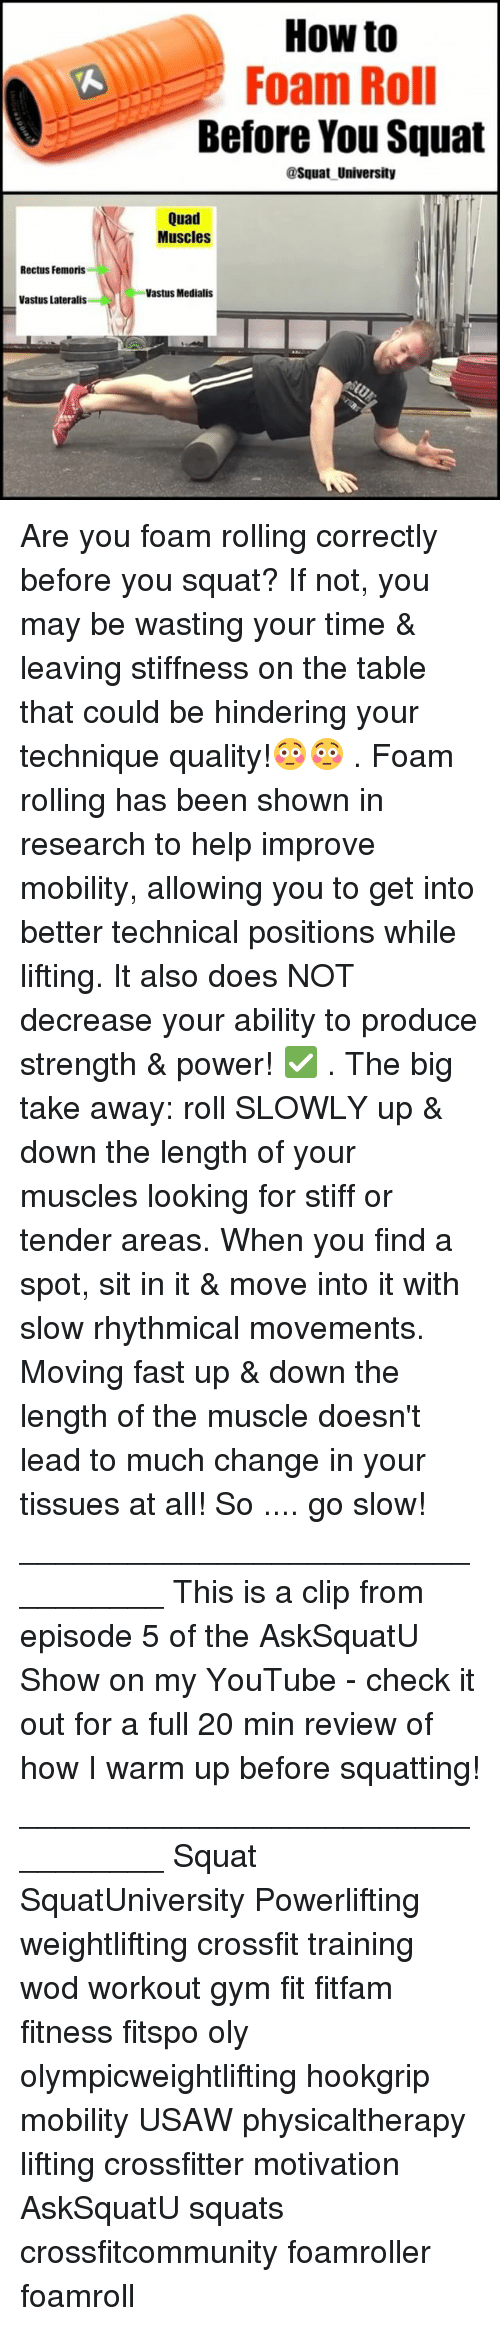 up down: How to  Foam Roll  Before You Squat  @Squat University  Quad  Muscles  Rectus Femoris  Vastus Medialis  Vastus Lateralis Are you foam rolling correctly before you squat? If not, you may be wasting your time & leaving stiffness on the table that could be hindering your technique quality!😳😳 . Foam rolling has been shown in research to help improve mobility, allowing you to get into better technical positions while lifting. It also does NOT decrease your ability to produce strength & power! ✅ . The big take away: roll SLOWLY up & down the length of your muscles looking for stiff or tender areas. When you find a spot, sit in it & move into it with slow rhythmical movements. Moving fast up & down the length of the muscle doesn't lead to much change in your tissues at all! So .... go slow! _________________________________ This is a clip from episode 5 of the AskSquatU Show on my YouTube - check it out for a full 20 min review of how I warm up before squatting! _________________________________ Squat SquatUniversity Powerlifting weightlifting crossfit training wod workout gym fit fitfam fitness fitspo oly olympicweightlifting hookgrip mobility USAW physicaltherapy lifting crossfitter motivation AskSquatU squats crossfitcommunity foamroller foamroll